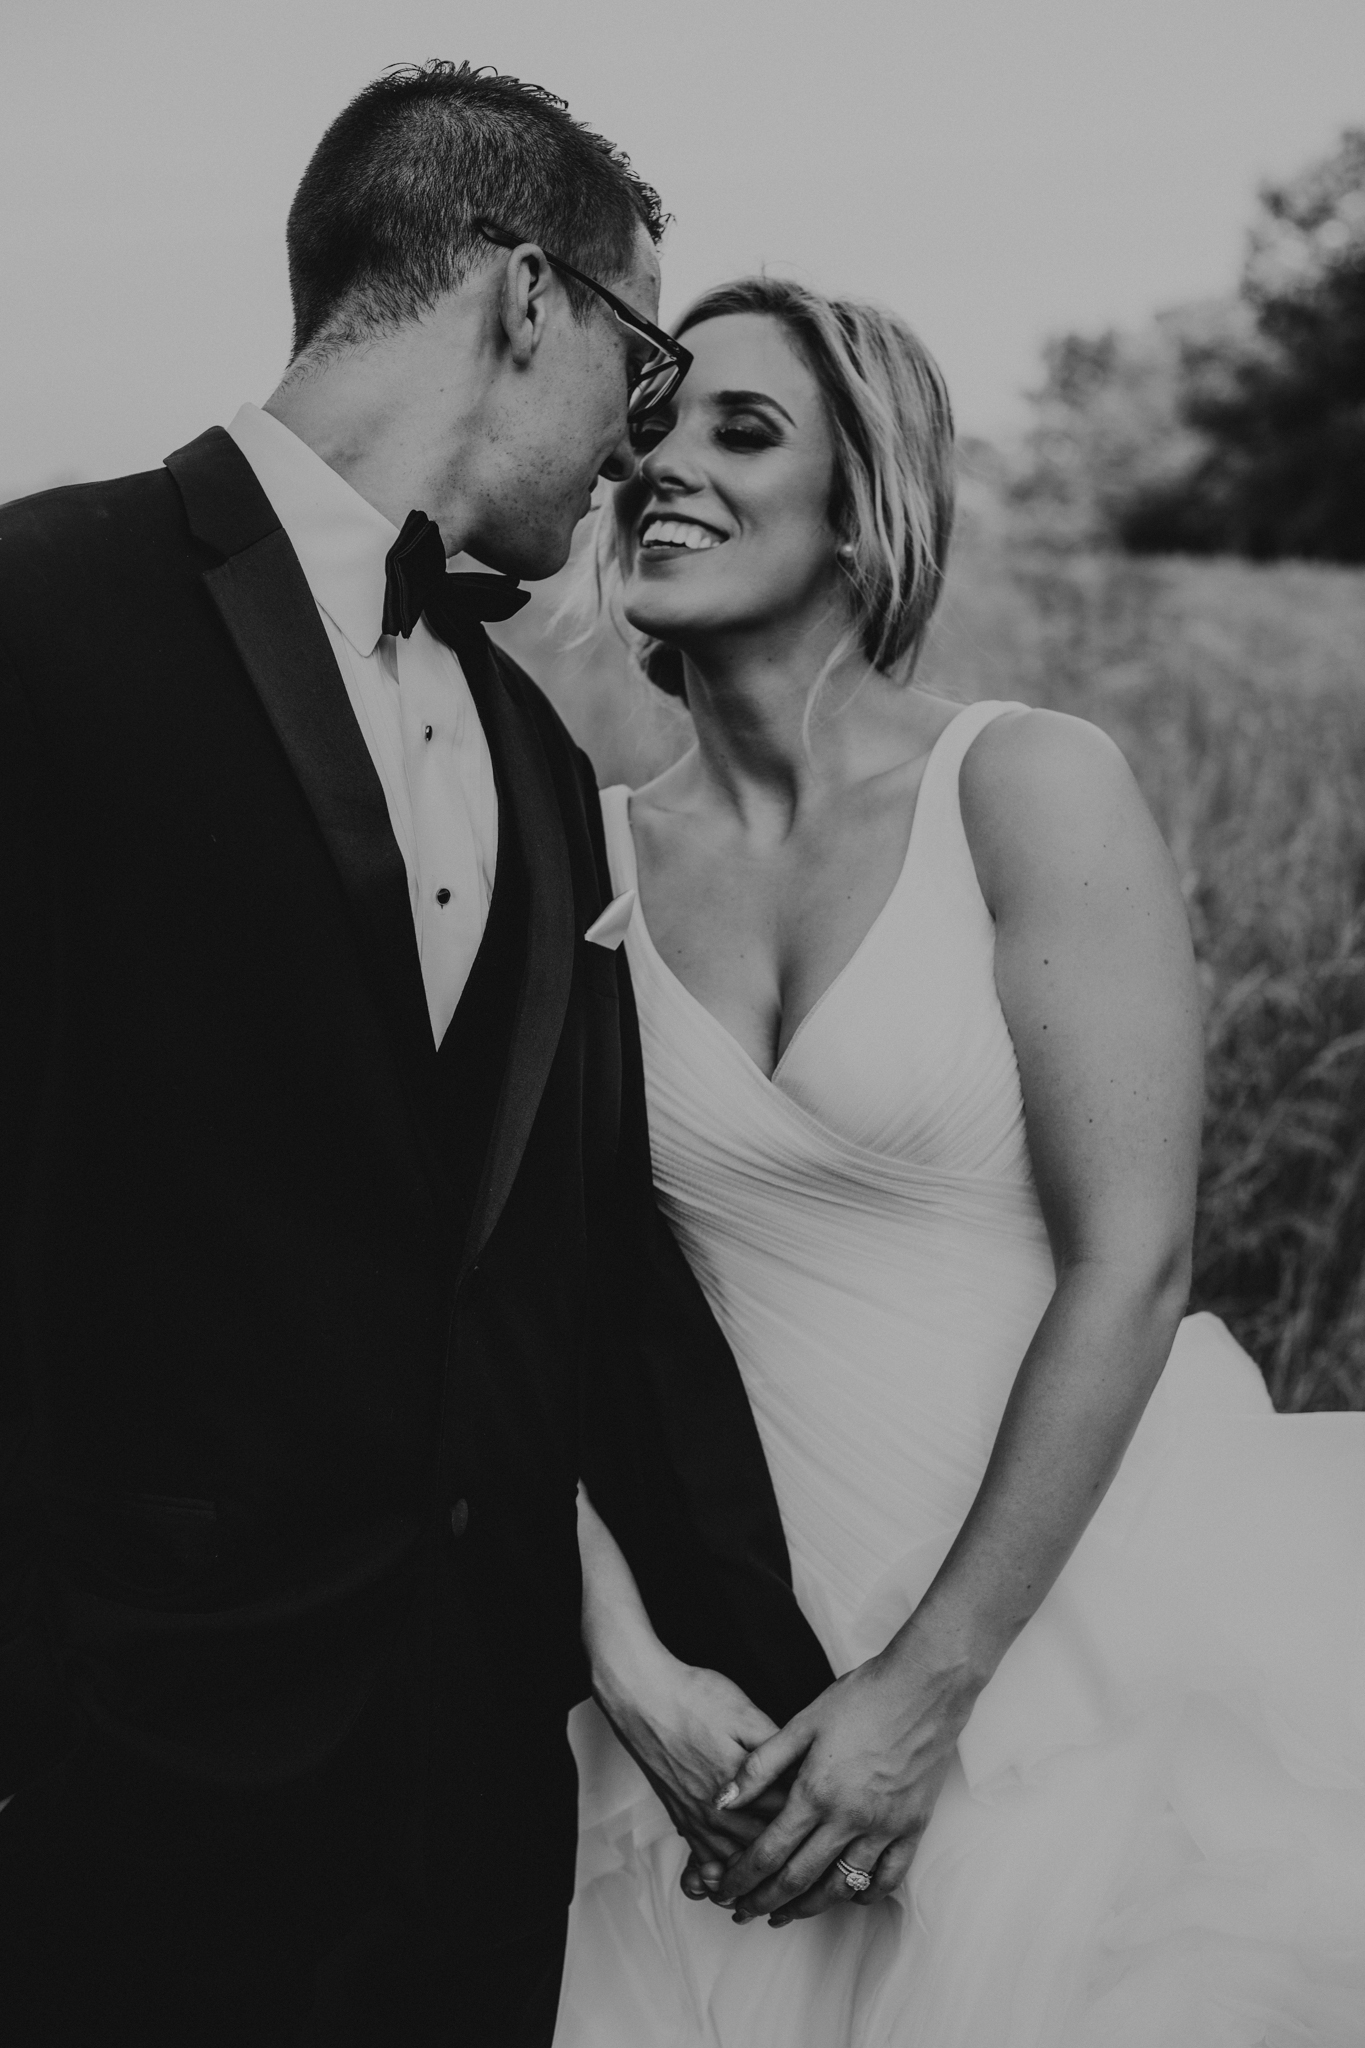 """Lovell Wedding - """"Jessika made our wedding portraits especially memorable with her flexible mindset, charismatic attitude and love for adventure! Her work is breathtaking and she is up for any challenges any big day may impose! Loved working with her as an artist, her artistic style adds romance to all of our special moments!"""""""